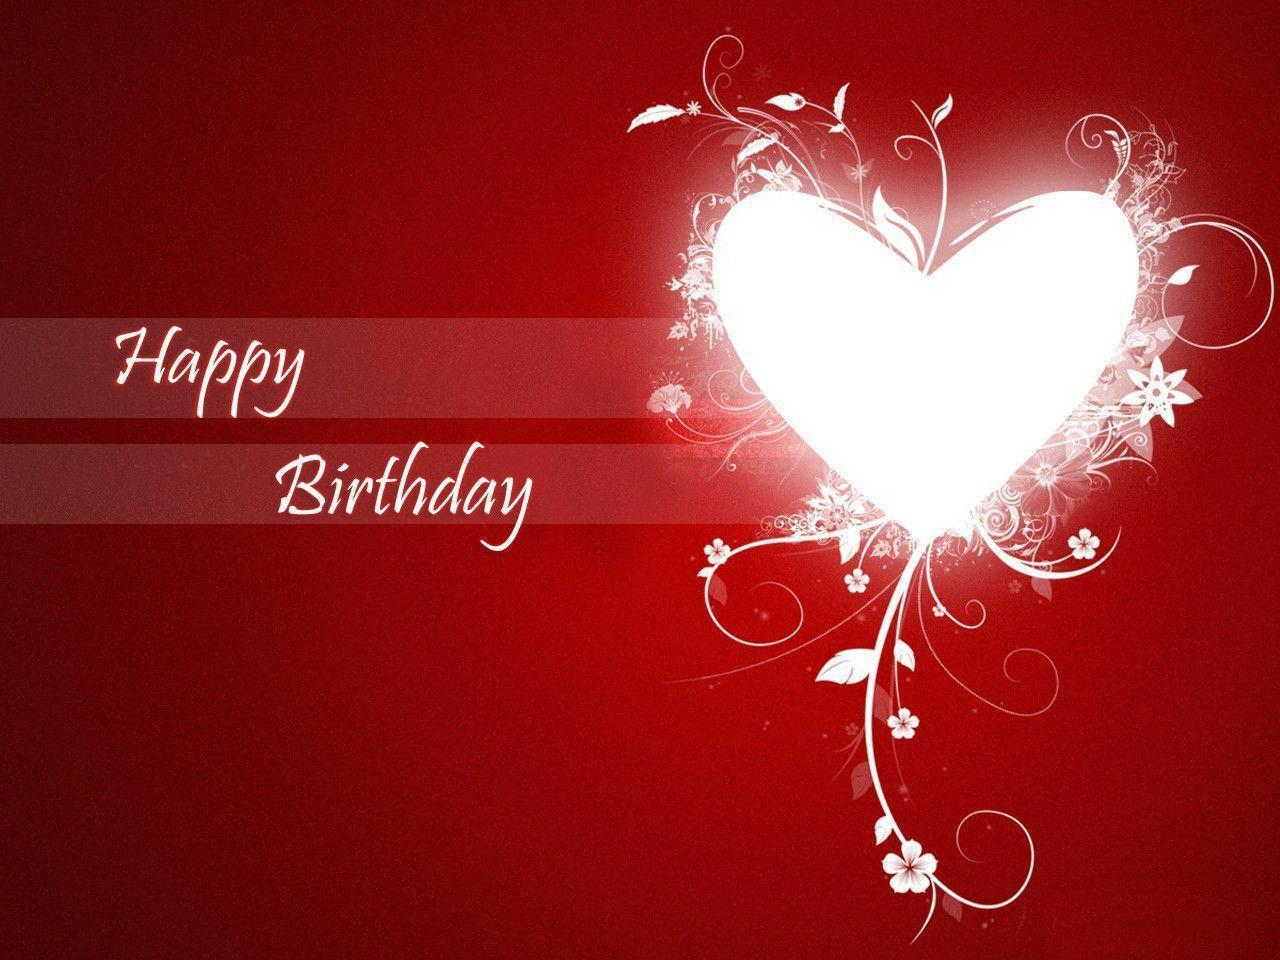 Lover Wallpaper Birthday : Happy Birthday Love Wallpapers - Wallpaper cave